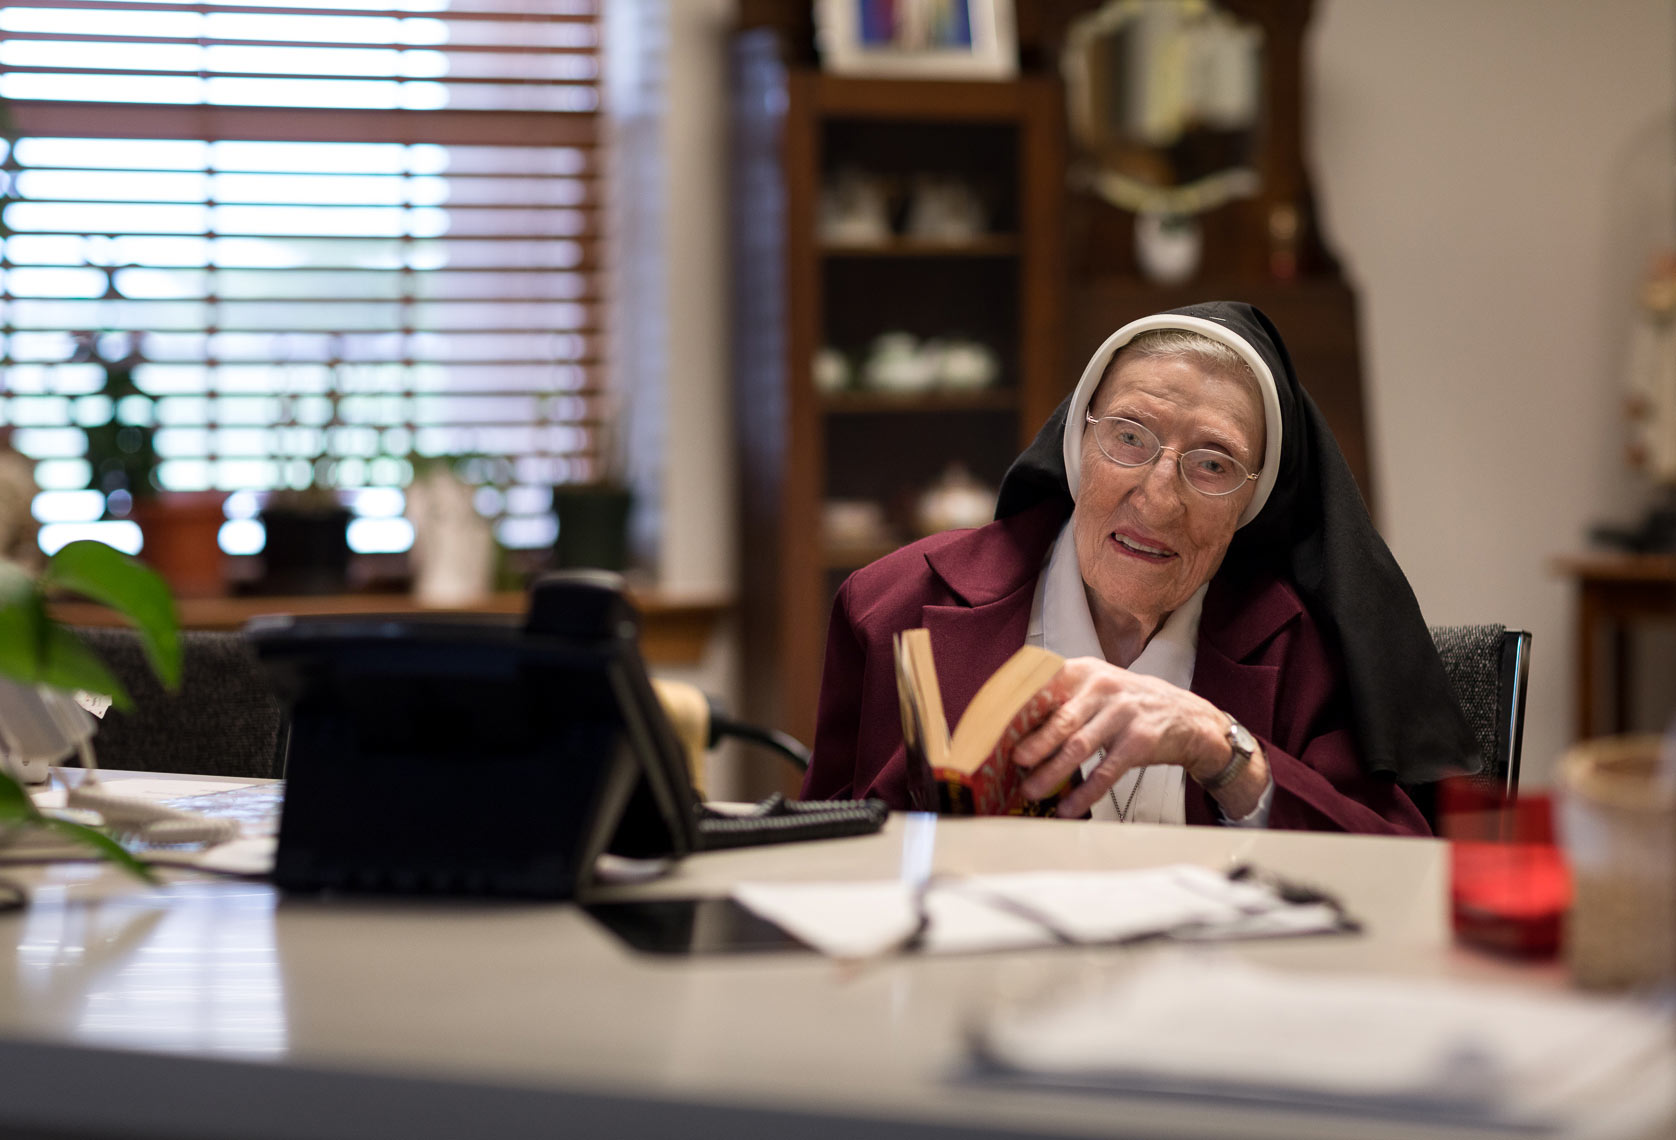 incarnate-word-nuns-corpus-christi-jason-risner-photography-3604a